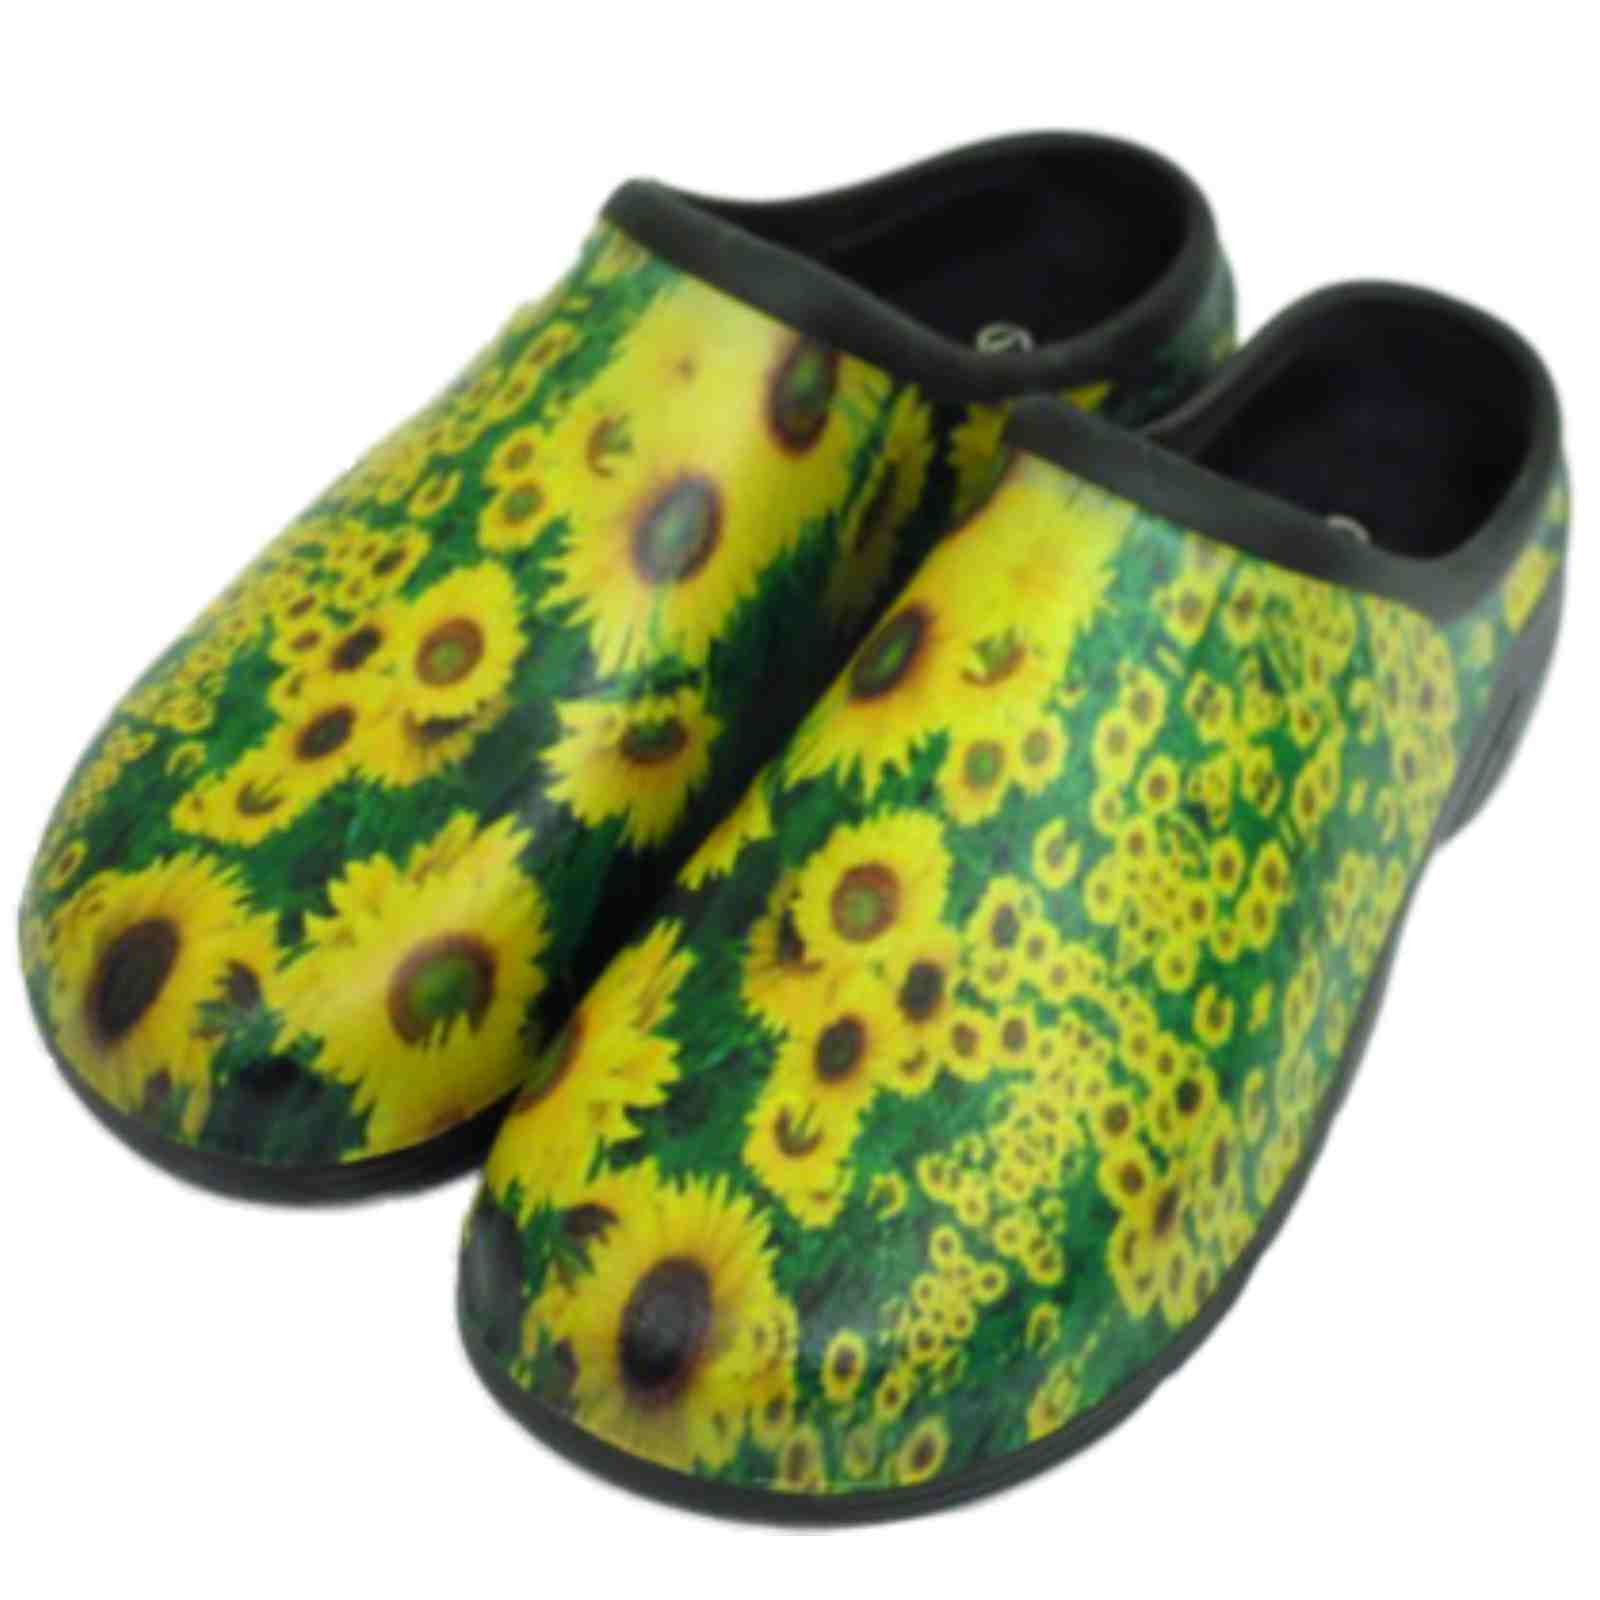 thumbnail 22 - LADIES-GARDENING-CLOGS-LIGHTWEIGHT-SLIP-ON-GARDEN-MULES-OUTDOOR-SHOES-UK-4-8